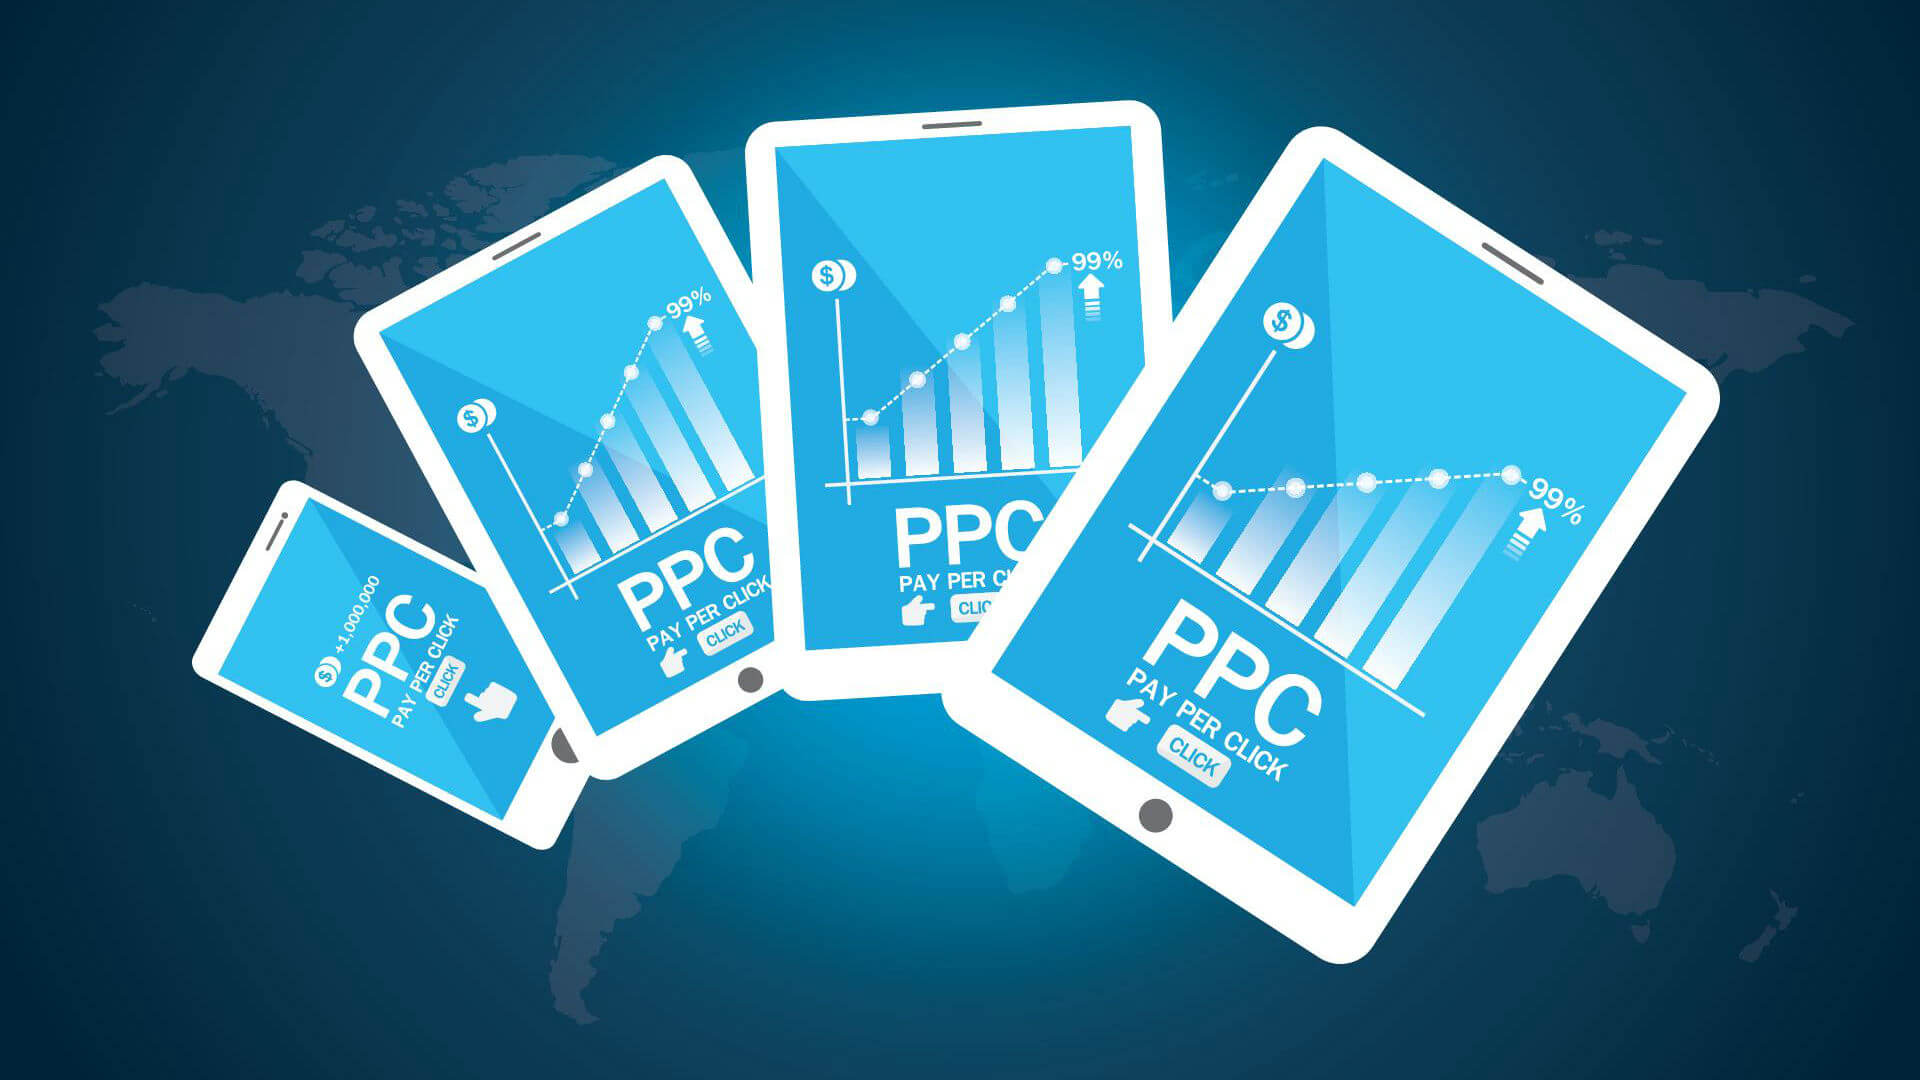 HOW TO USE PAY PER CLICK FOR BETTER CONVERSION?